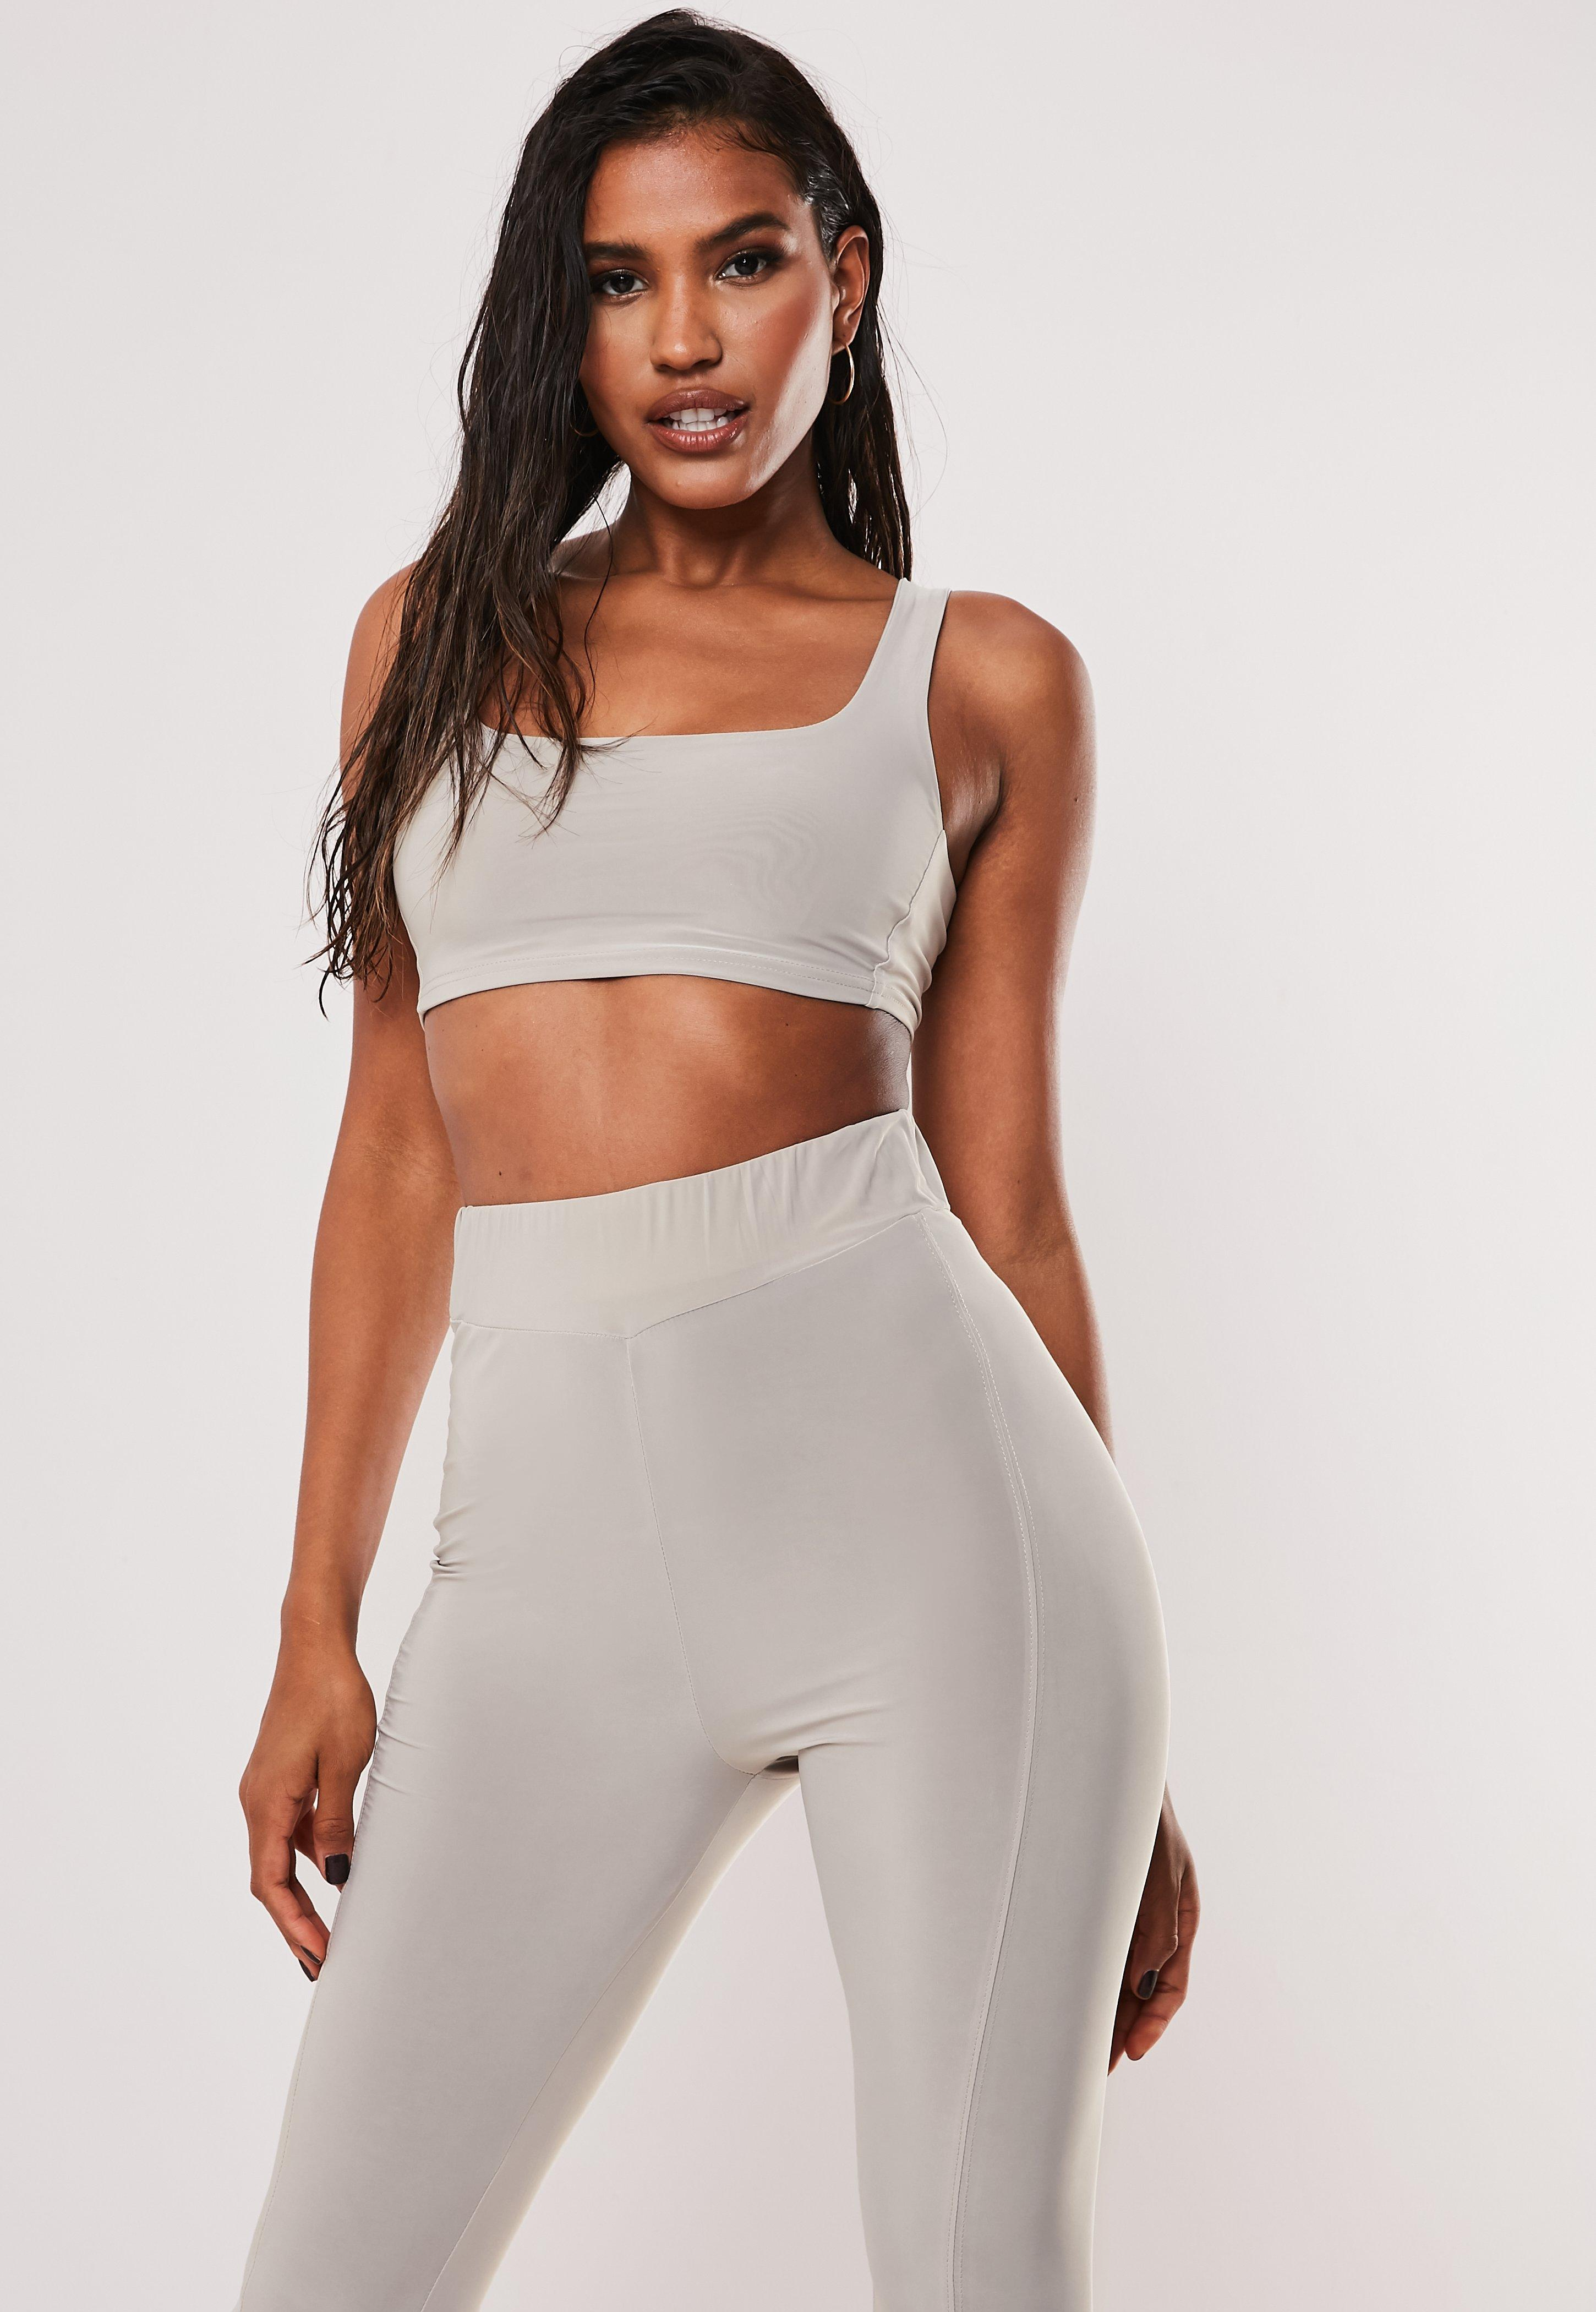 ea51198d Two Piece Sets - Two Piece Dresses, Co-ords & Outfits | Missguided